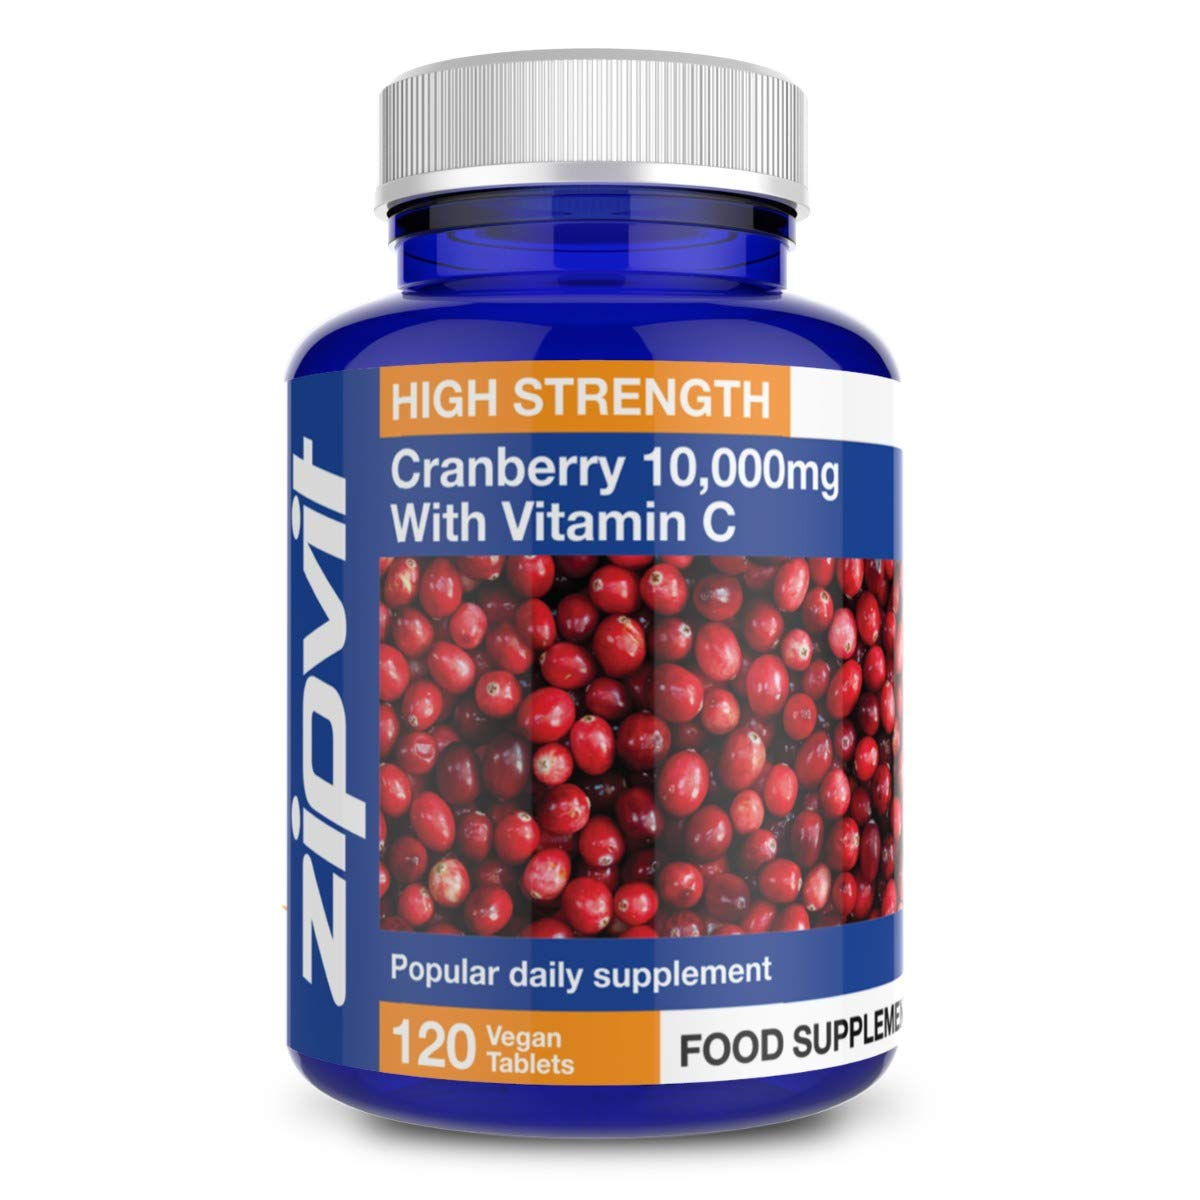 Cranberry Tablets 10000mg with Vitamin C, 120 Vegan Tablets. 4 Months Supply. UK Manufactured.